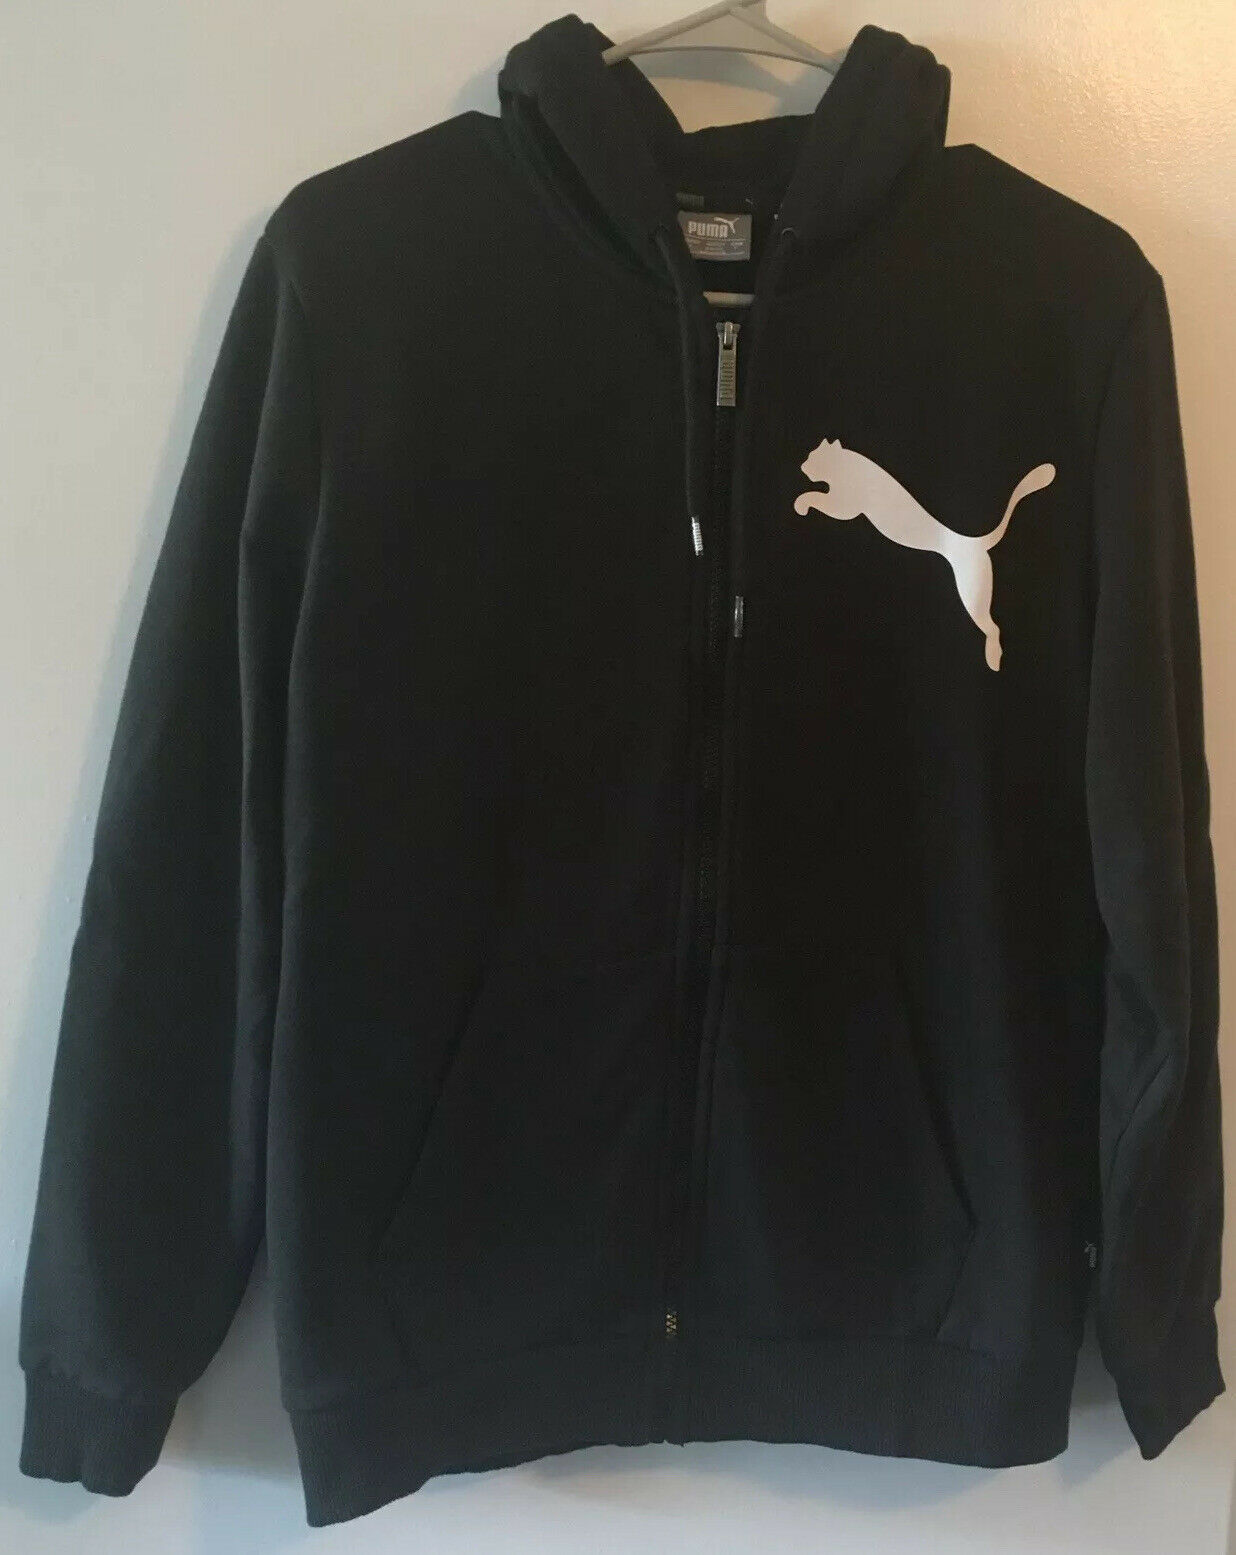 Primary image for Puma Mens Black Hooded Sweatshirt size Small